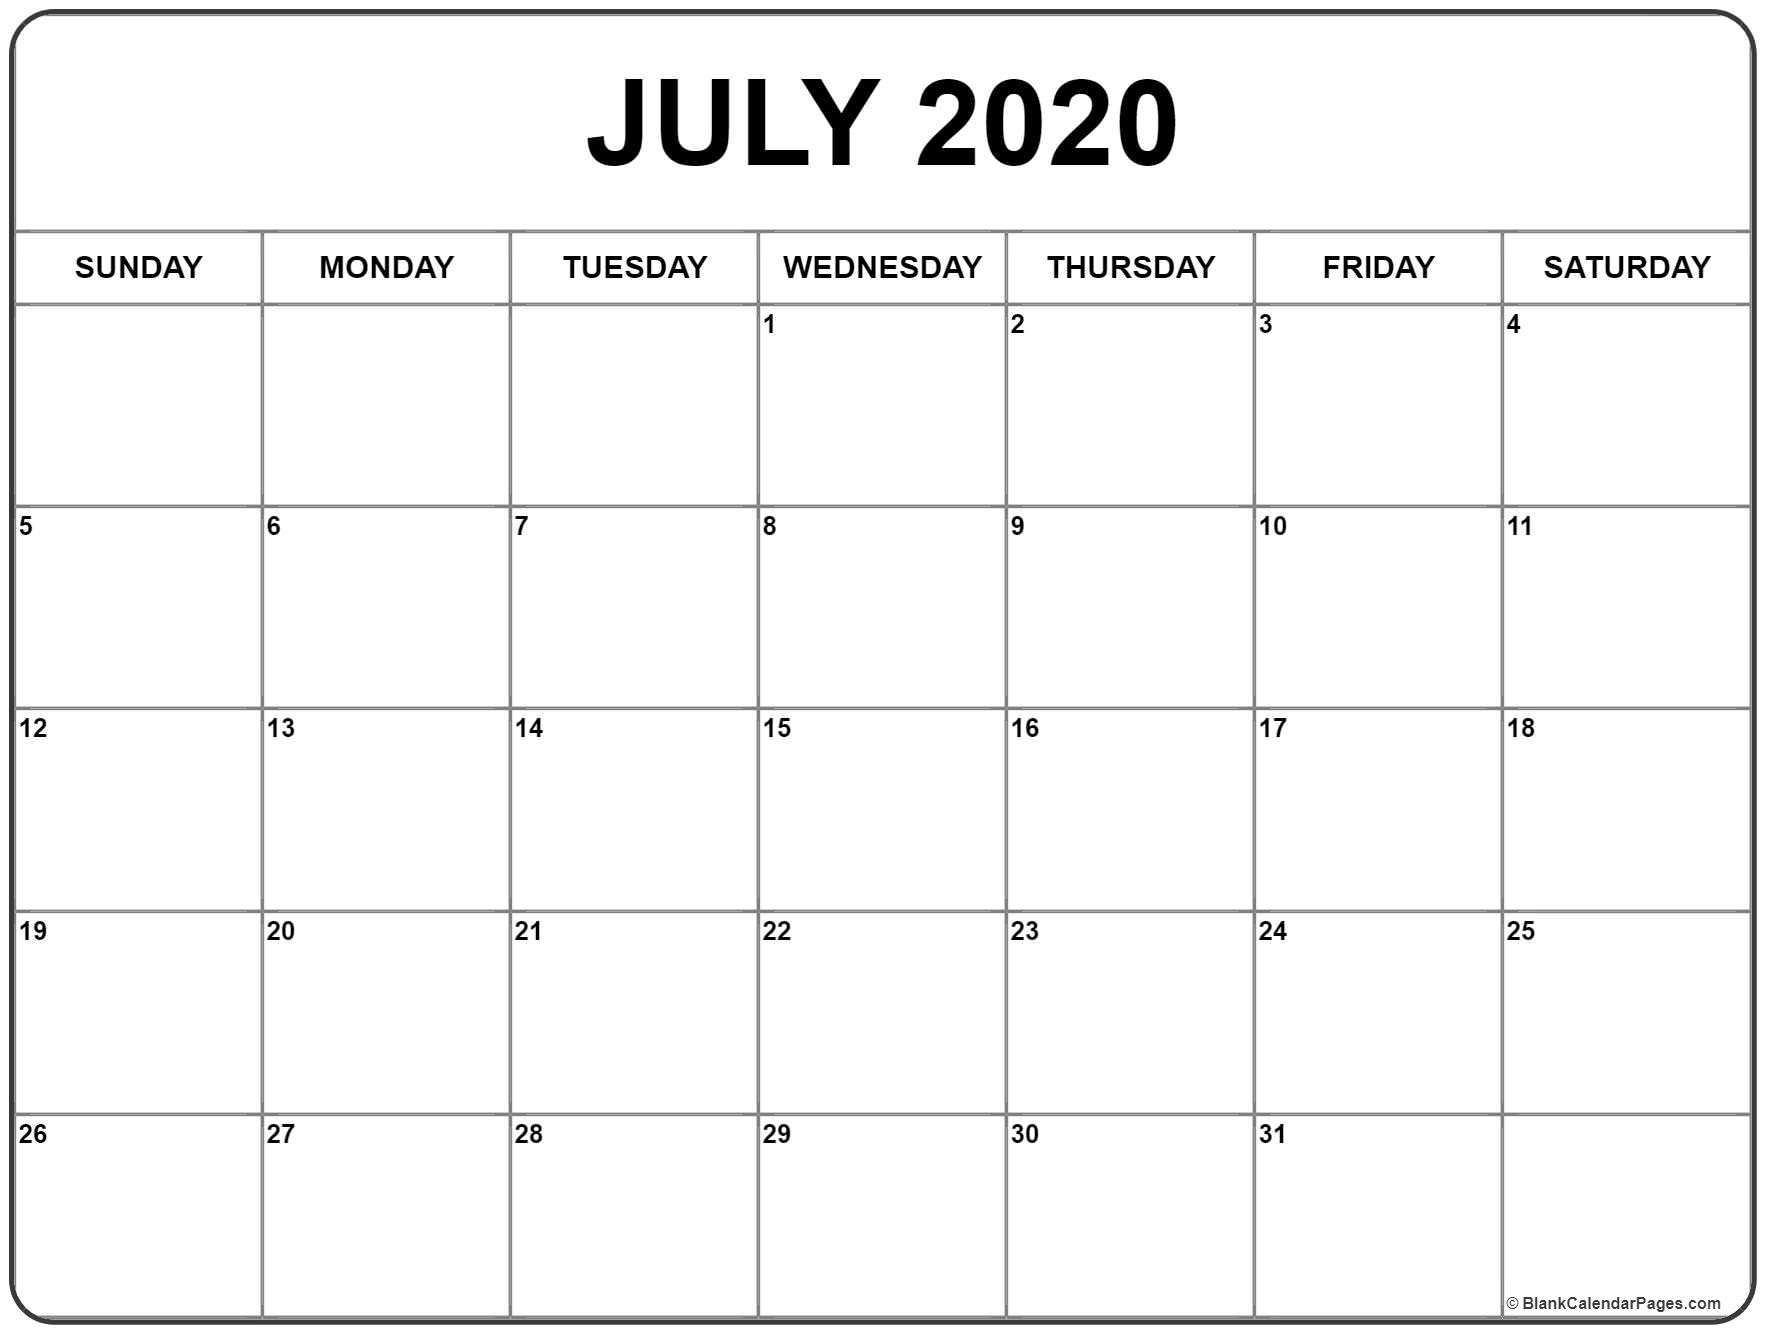 July 2020 Calendar | Free Printable Monthly Calendars throughout 2020 Free Printable Coloring Calendar